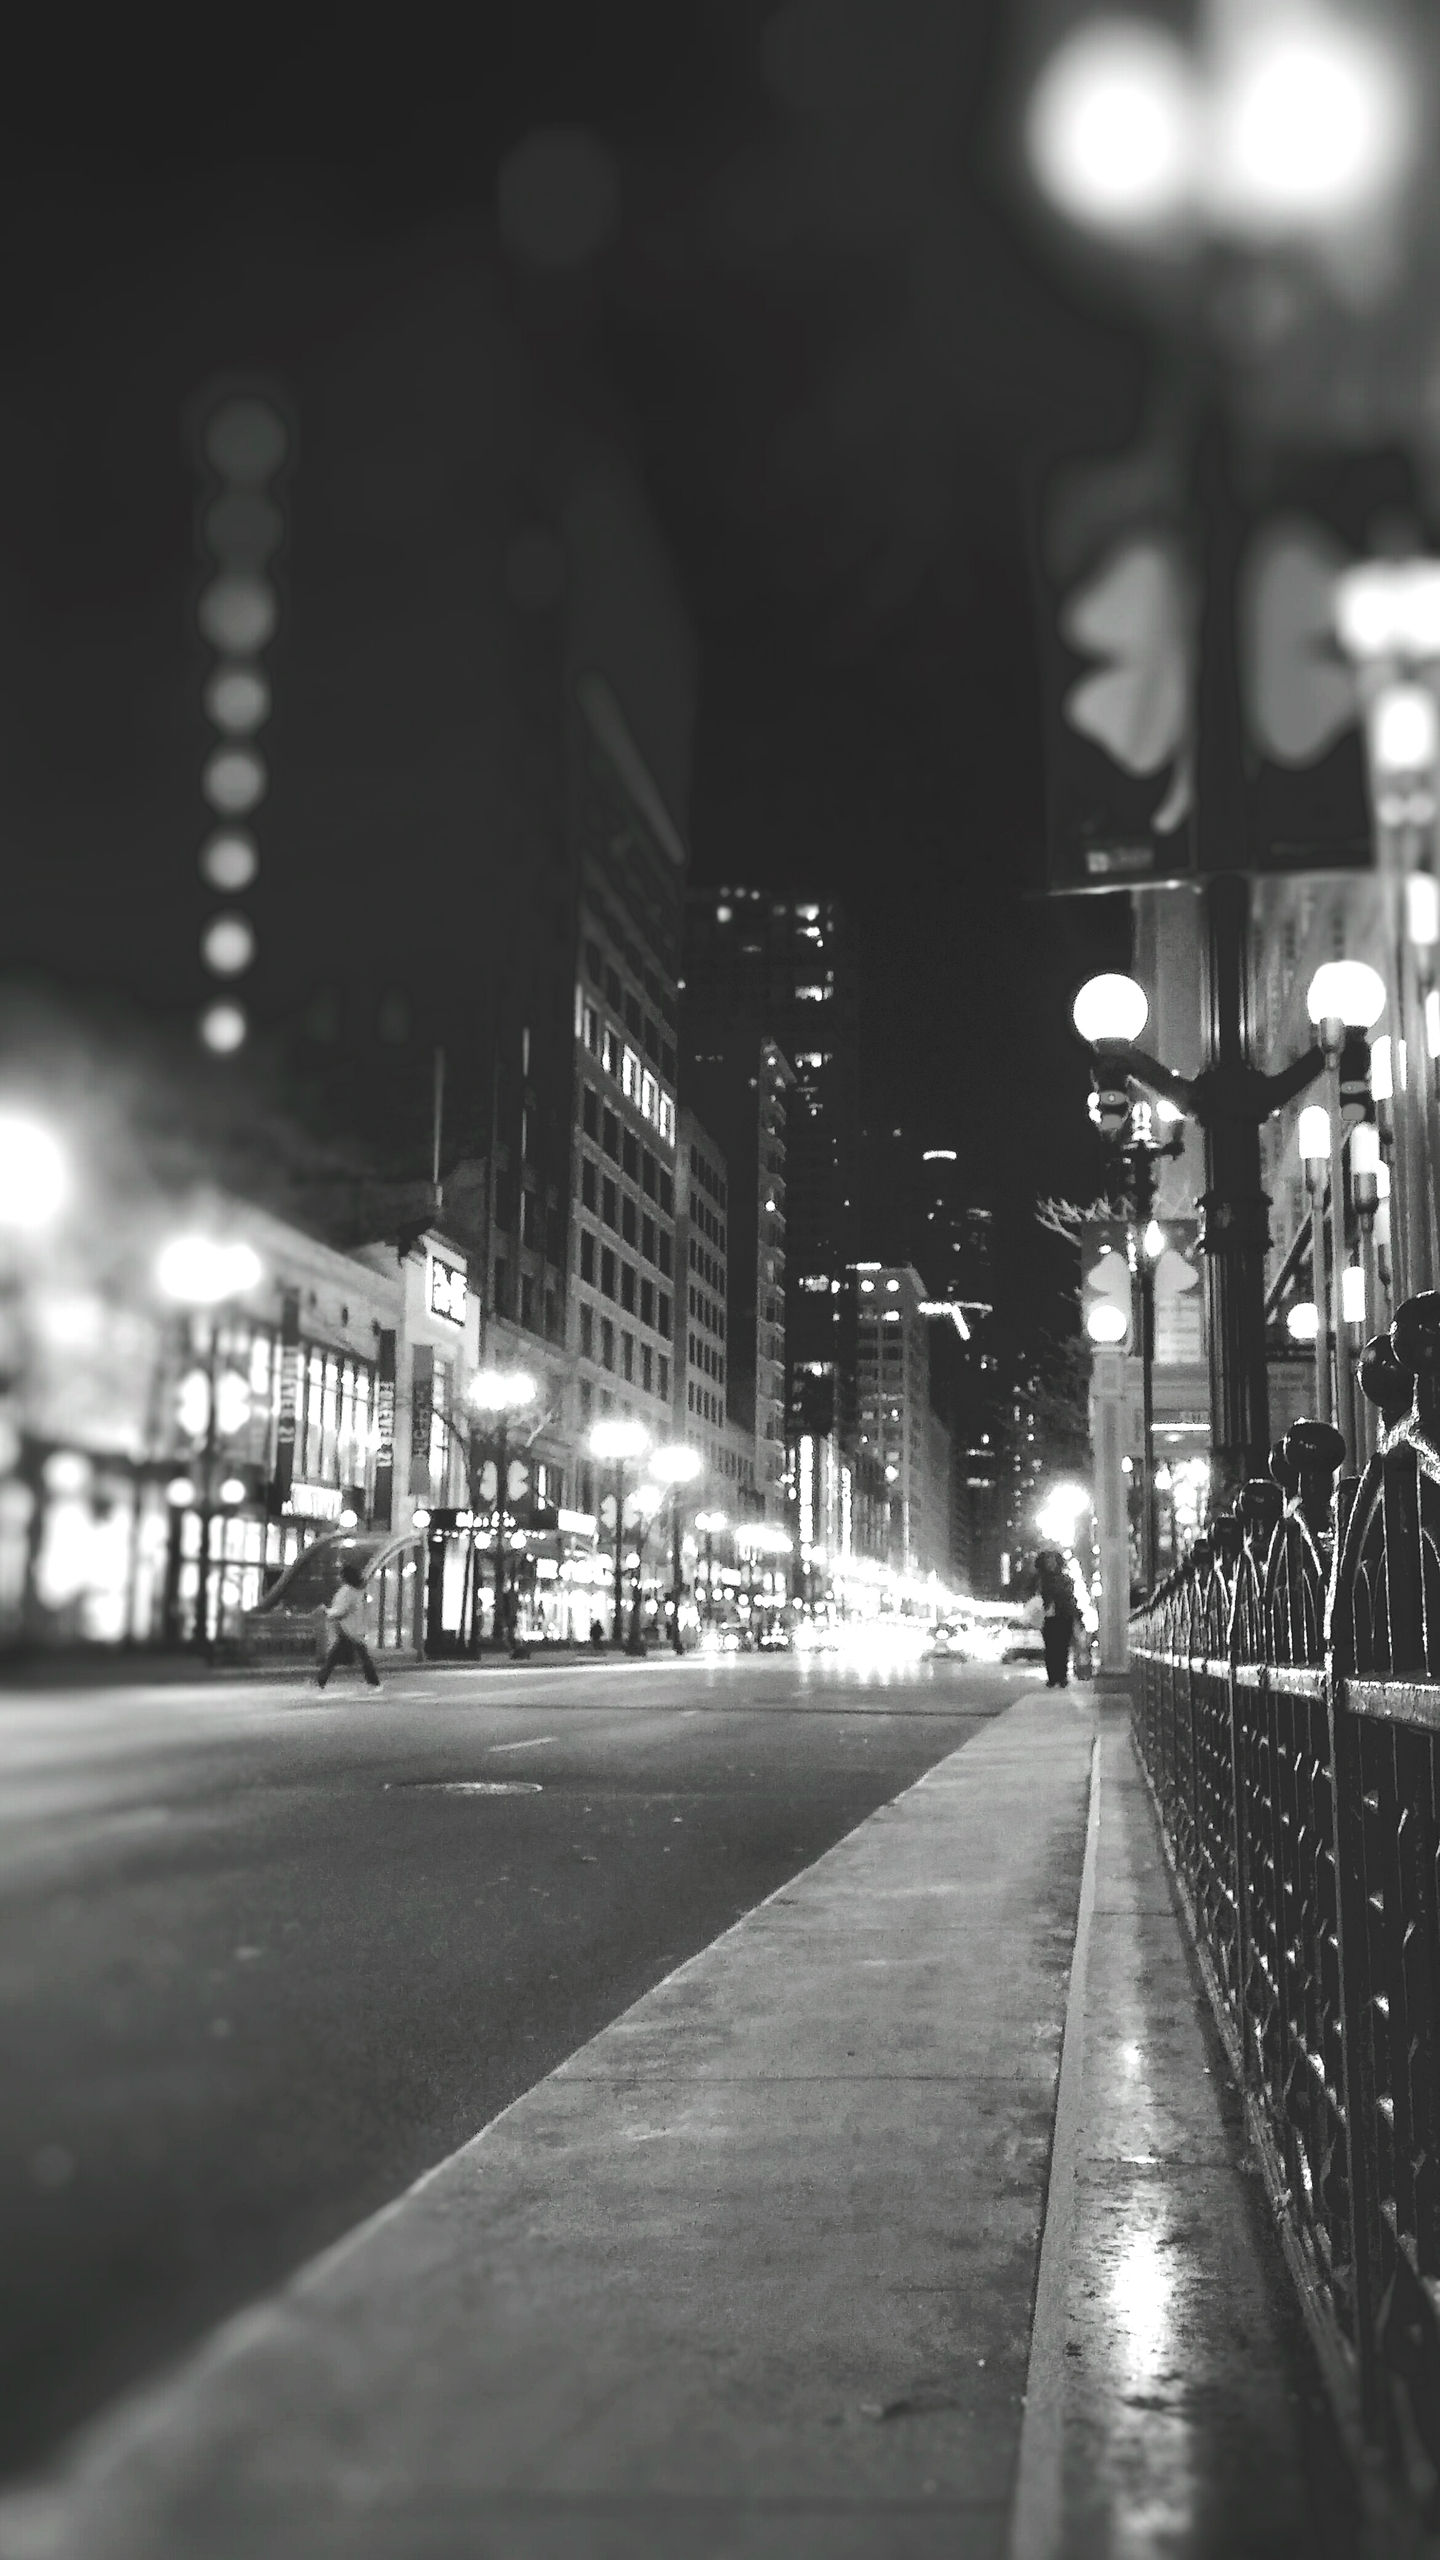 Night Chicago - blackandwhitephotography - ranjiroo | ello